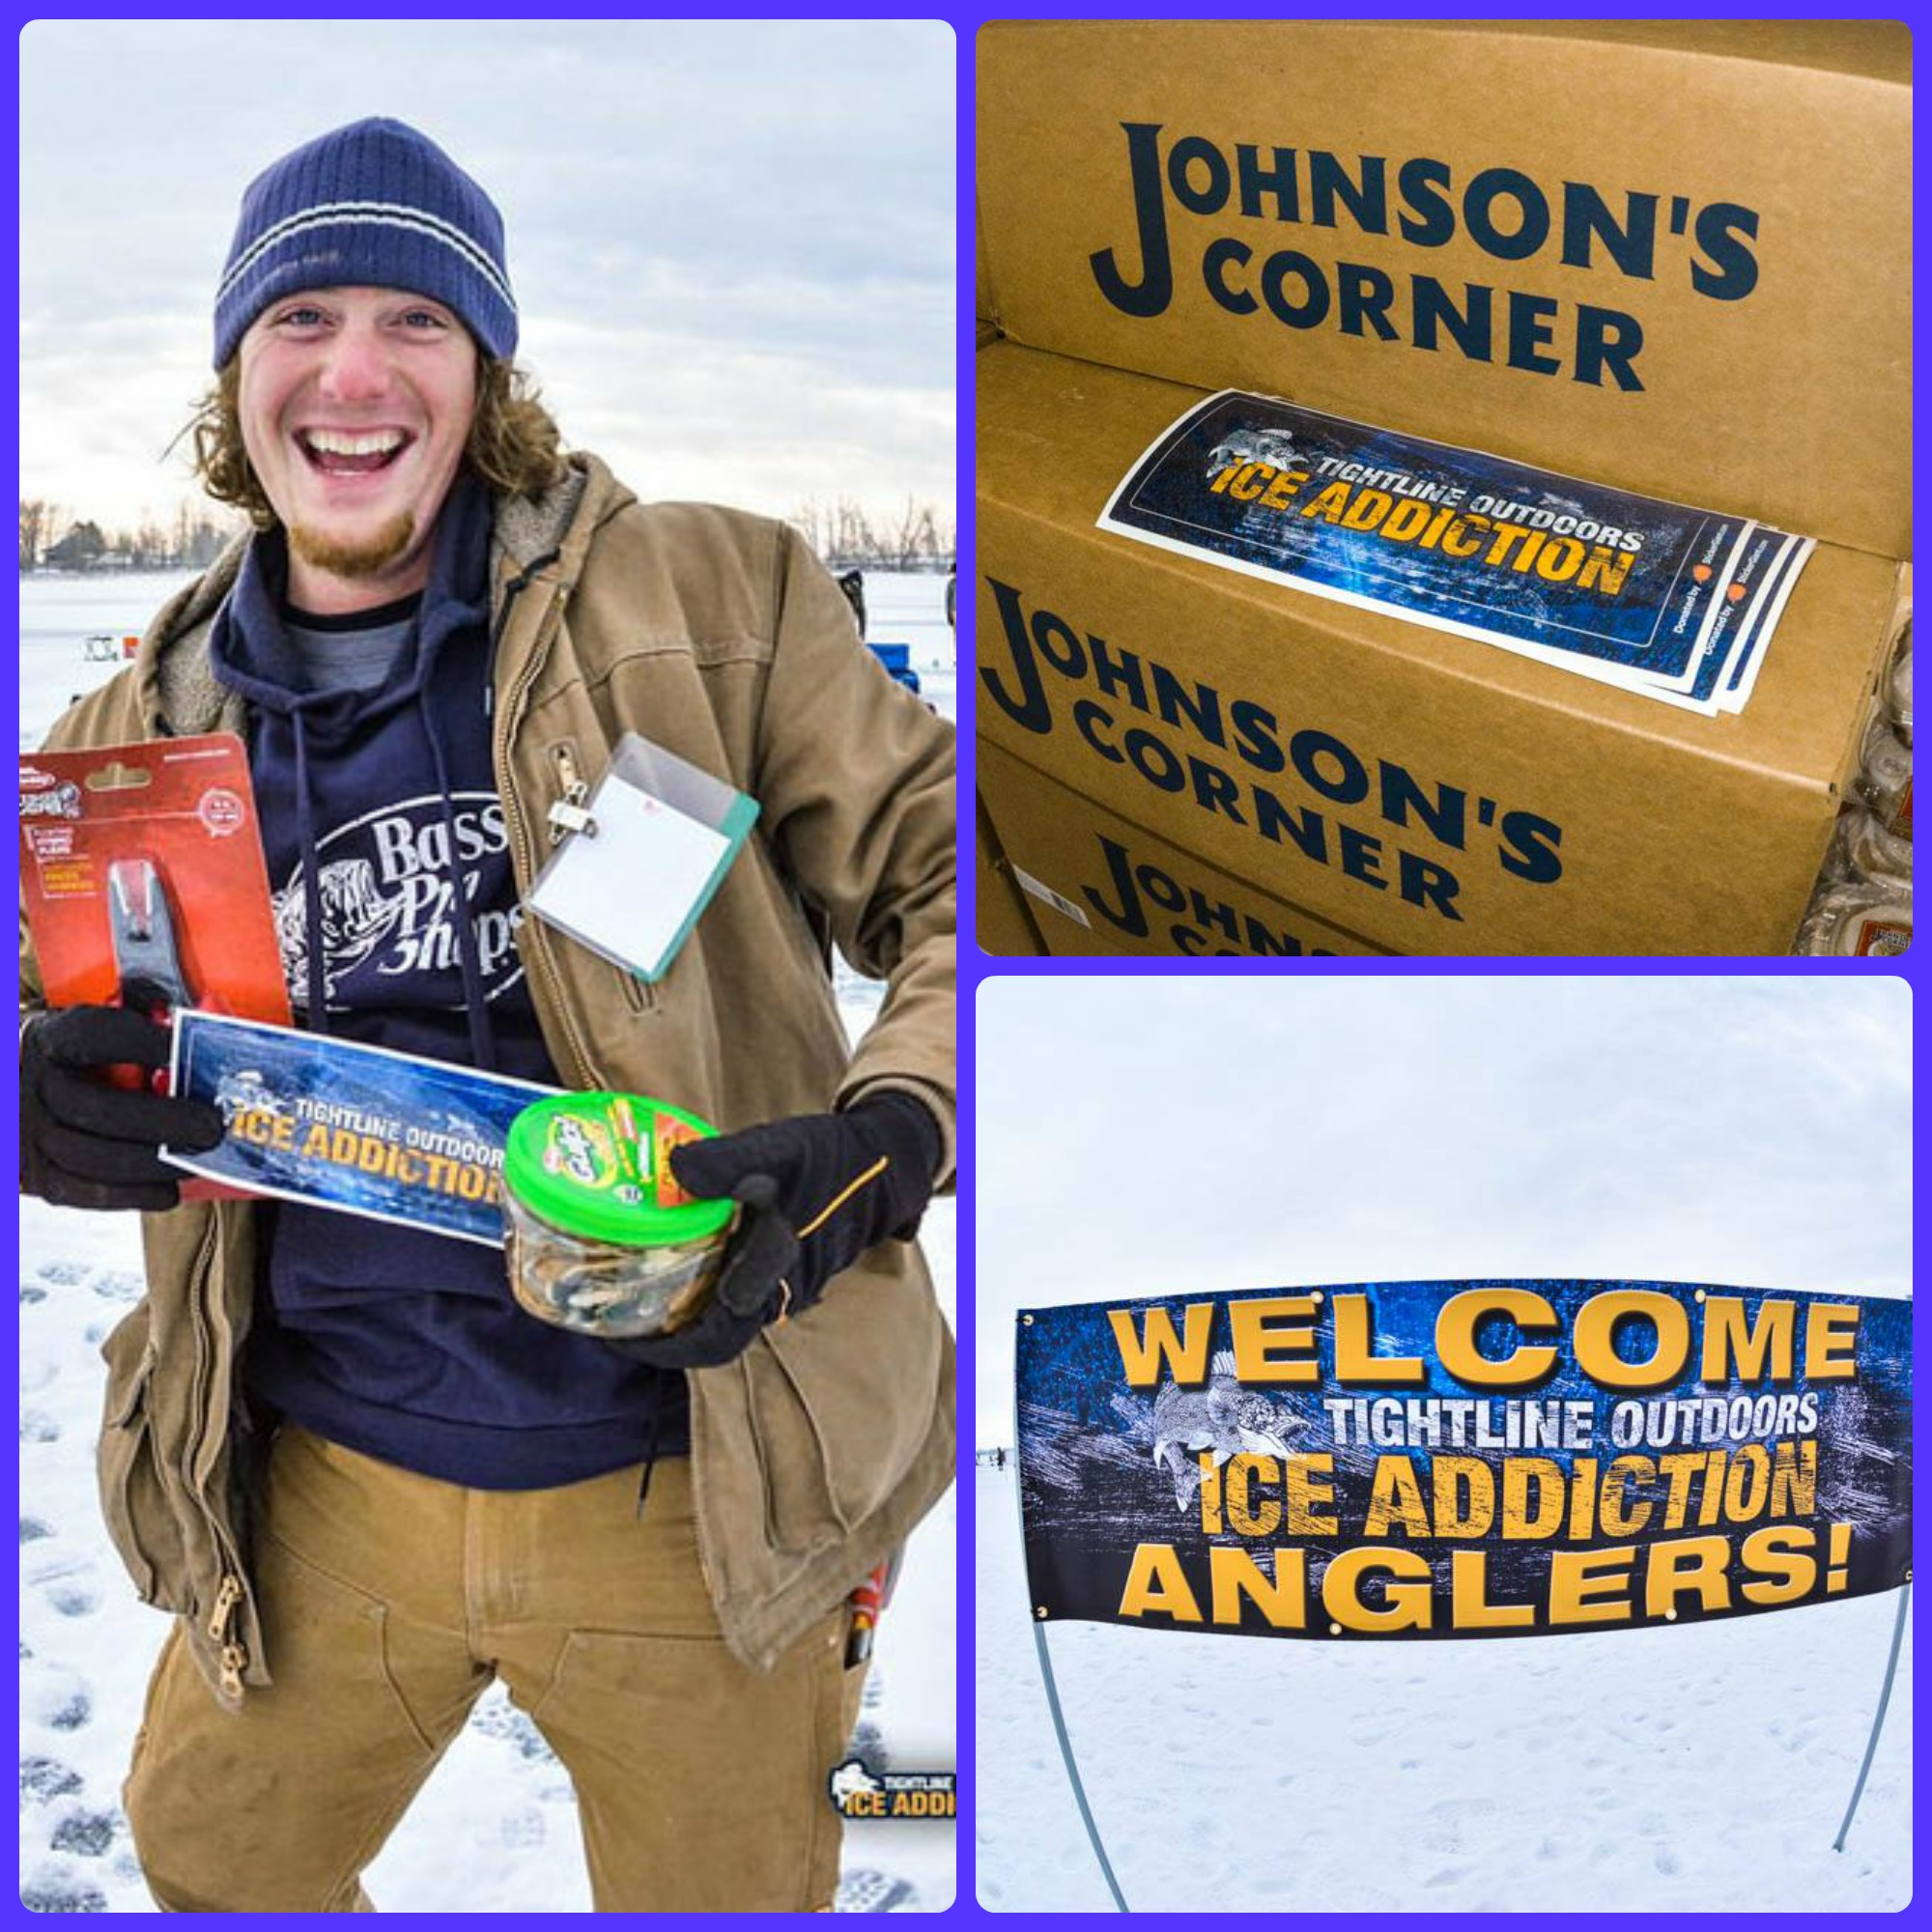 StickerGiant helped sponsor the Tightline Outdoors Ice Addiction event